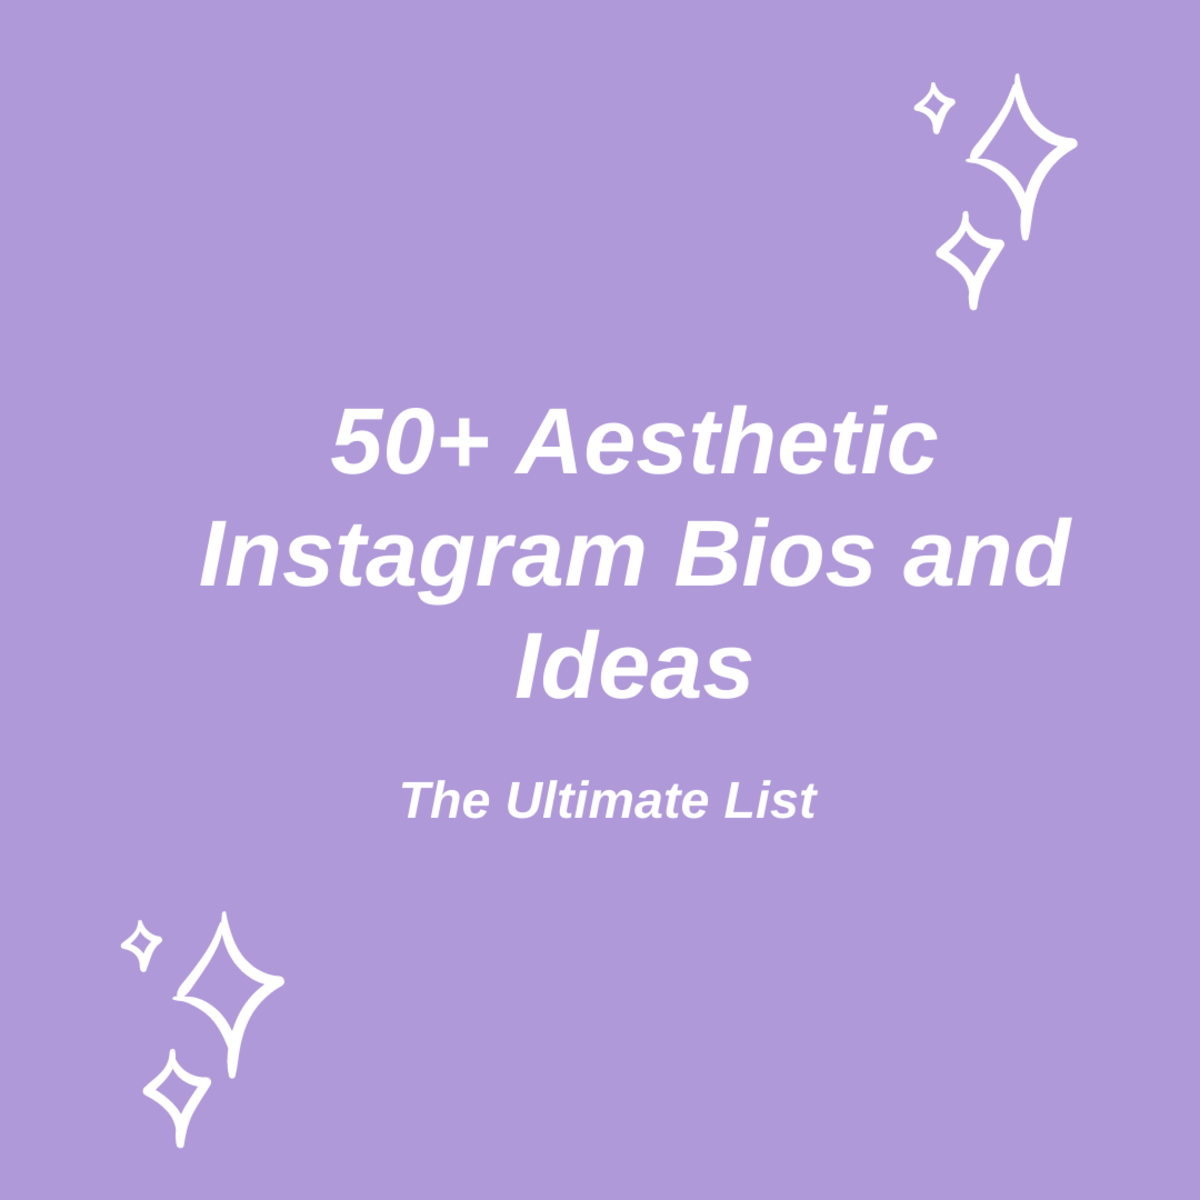 In this guide, we'll be taking a look at over 50 aesthetic Instagram bios and ideas!